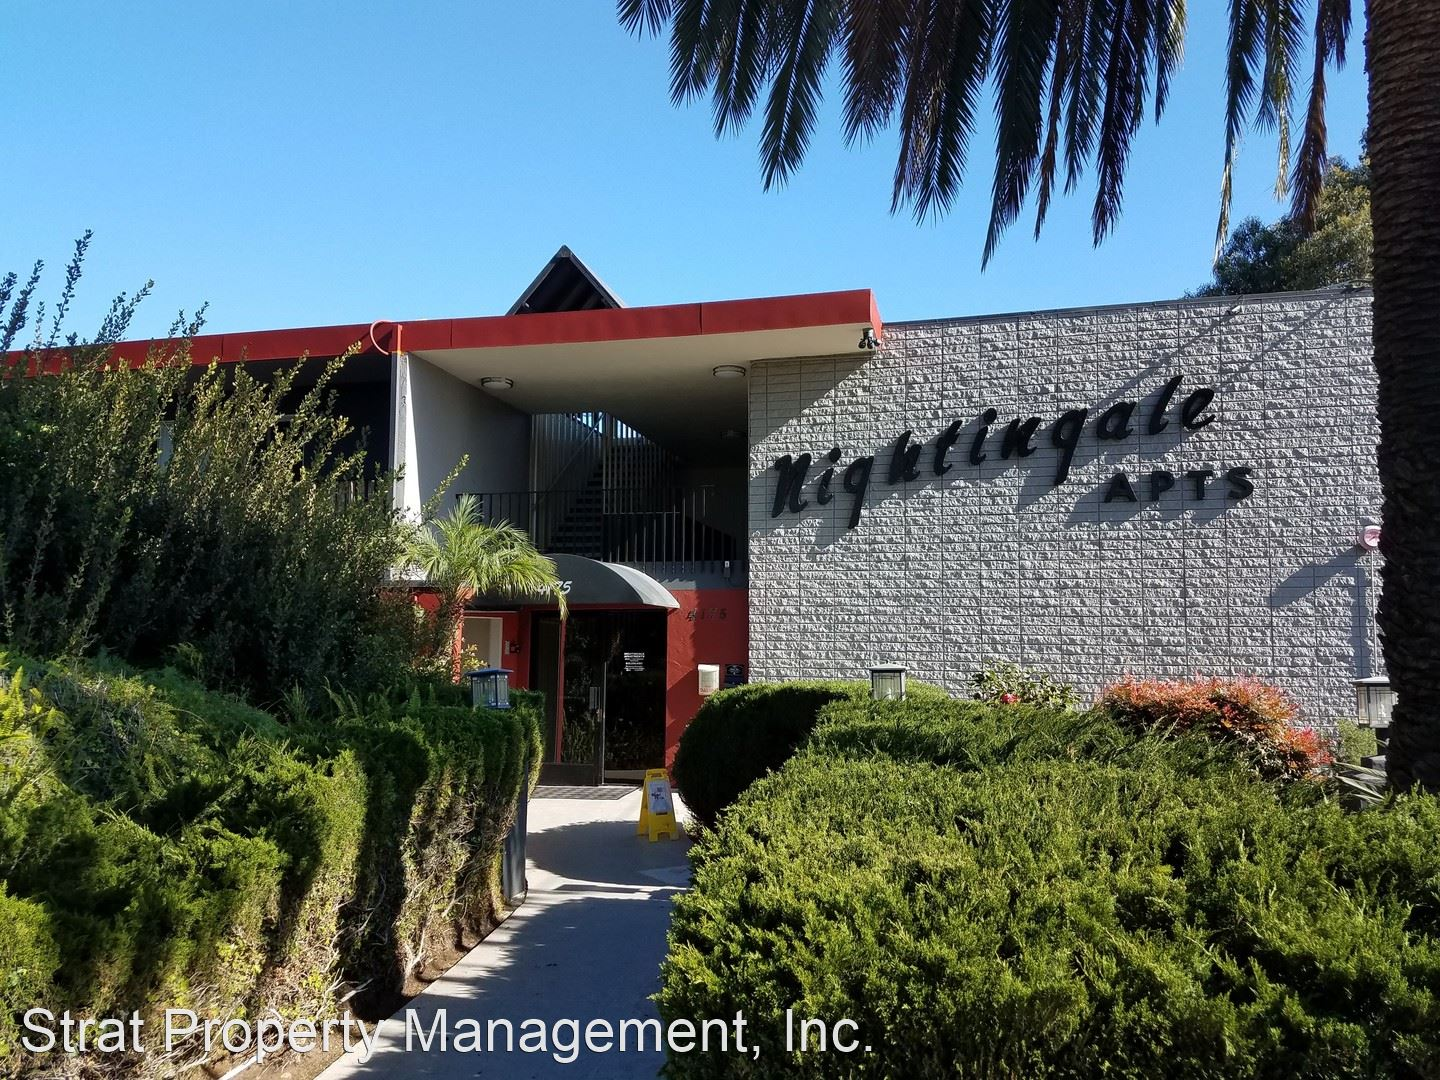 Nightingale Apartments 4175 Bachman Pl. - 1595USD / month